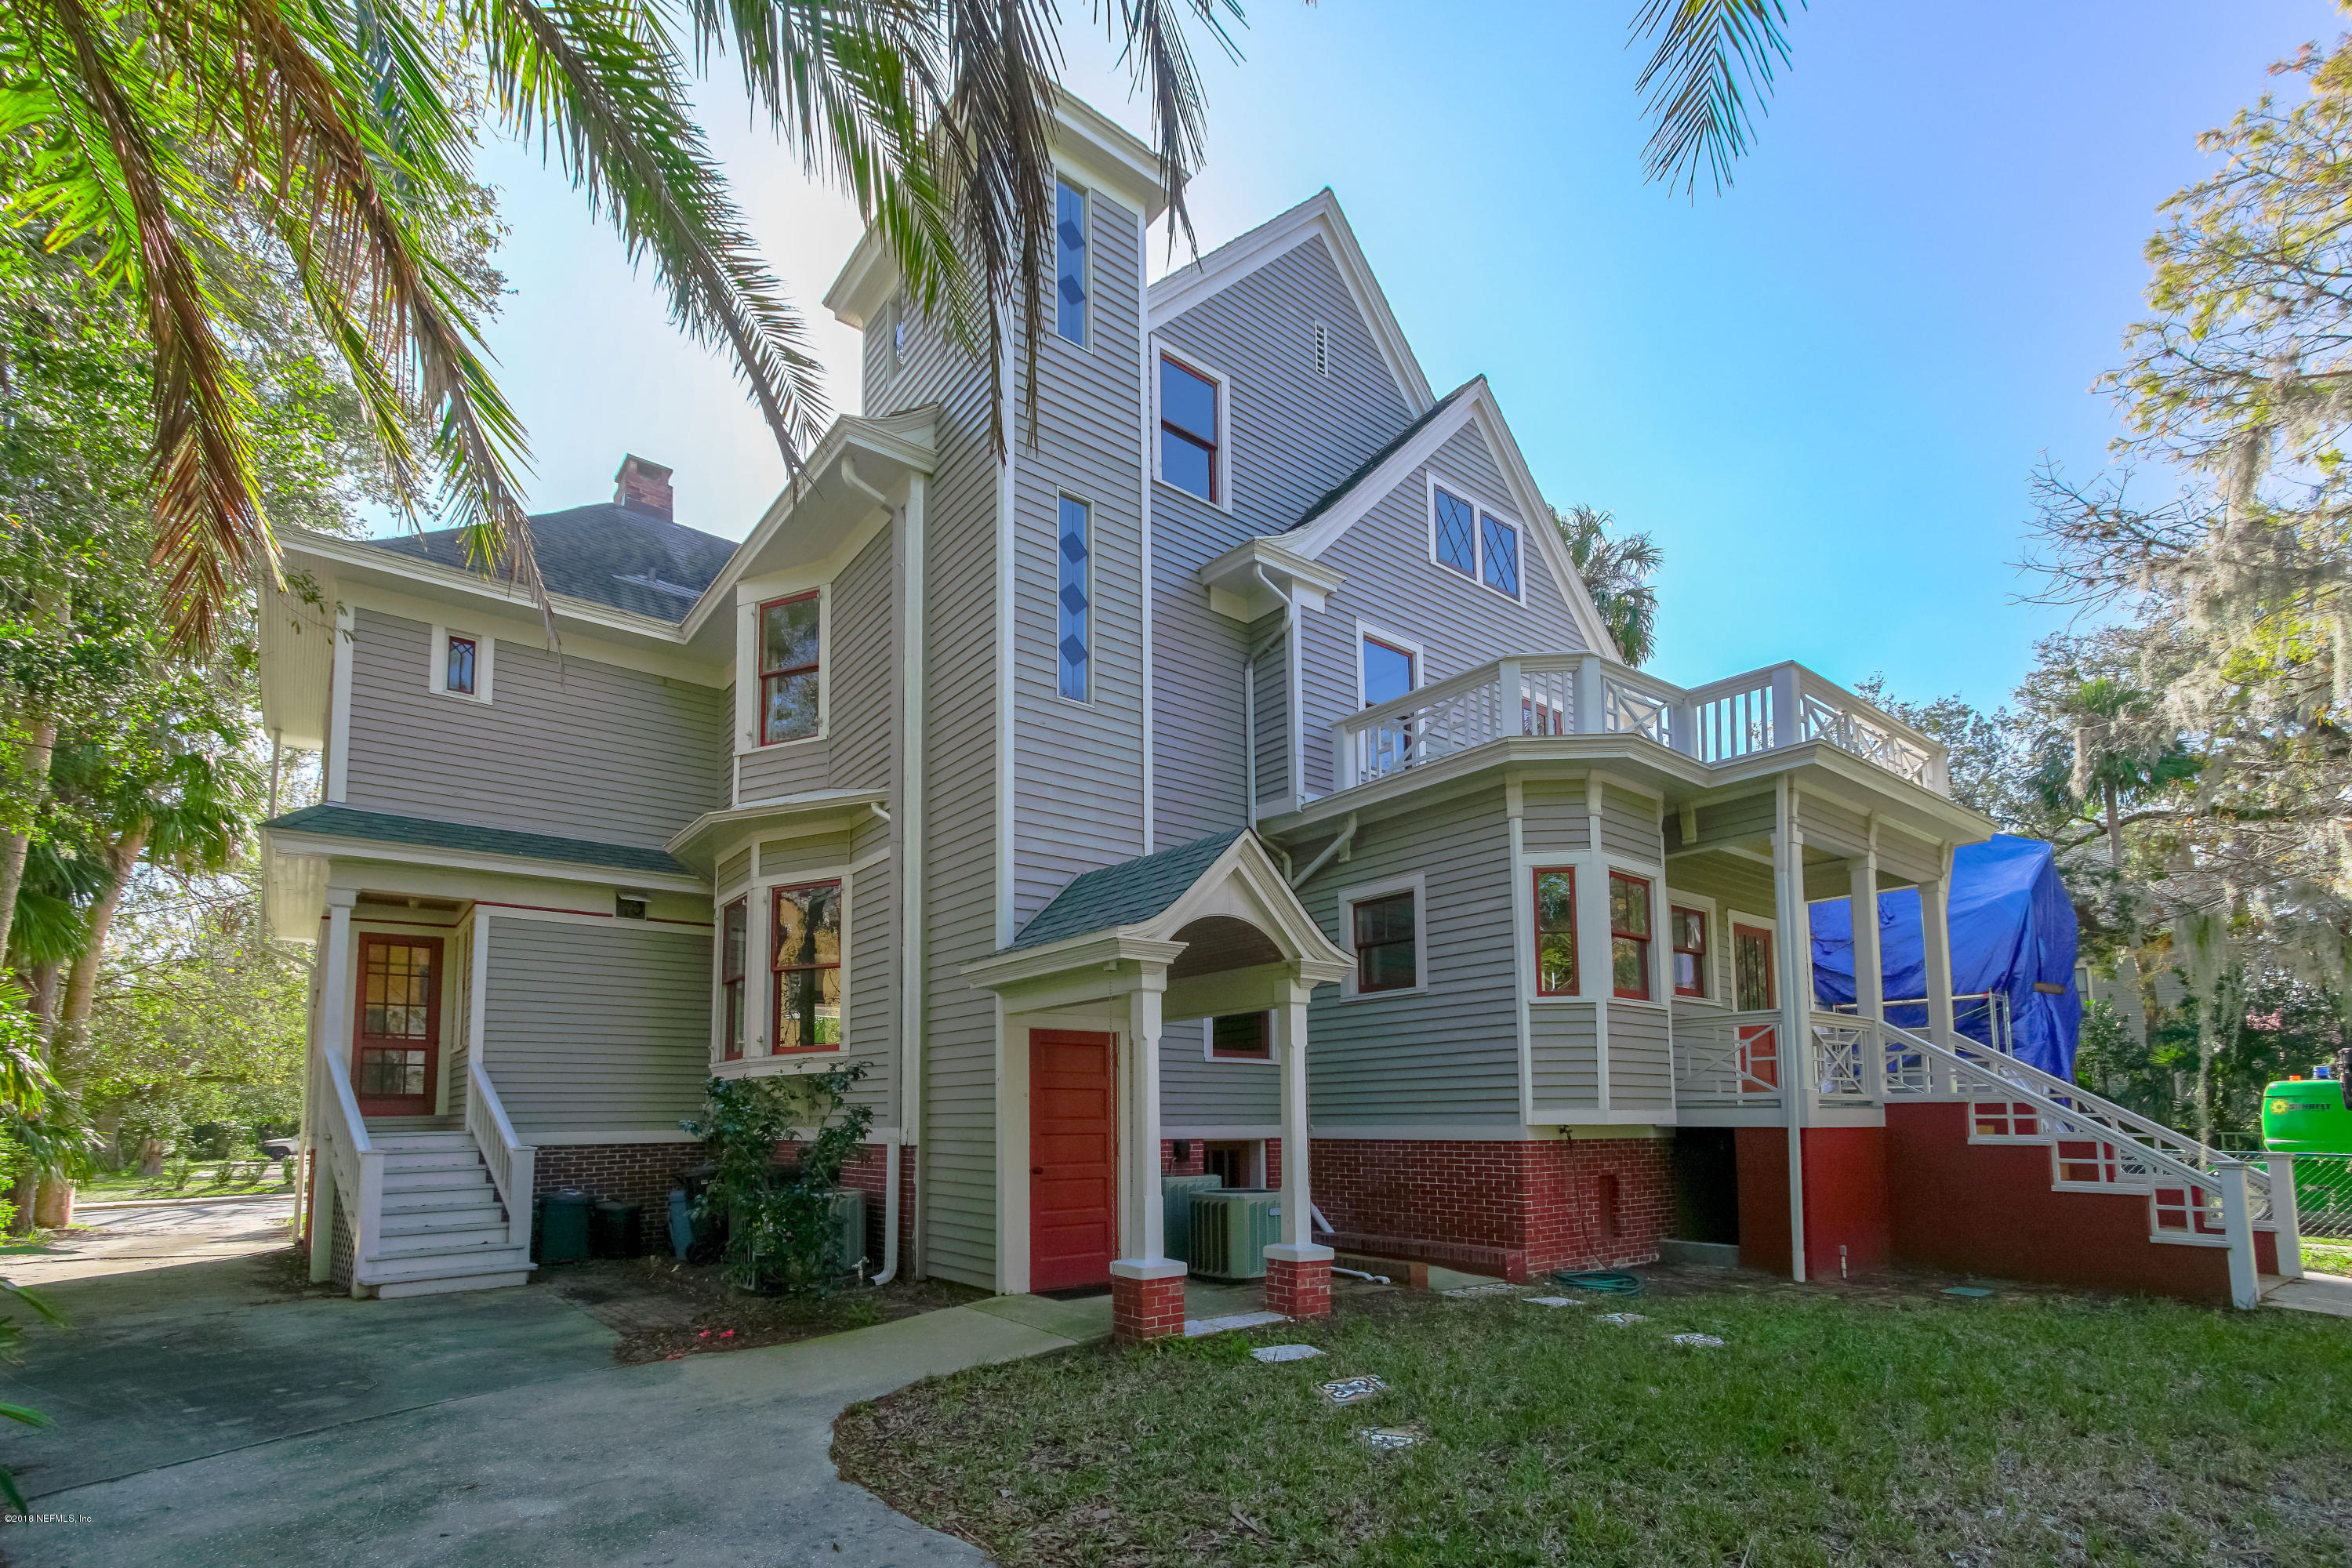 36 CARRERA, ST AUGUSTINE, FLORIDA 32084, 4 Bedrooms Bedrooms, ,4 BathroomsBathrooms,Residential - single family,For sale,CARRERA,916886